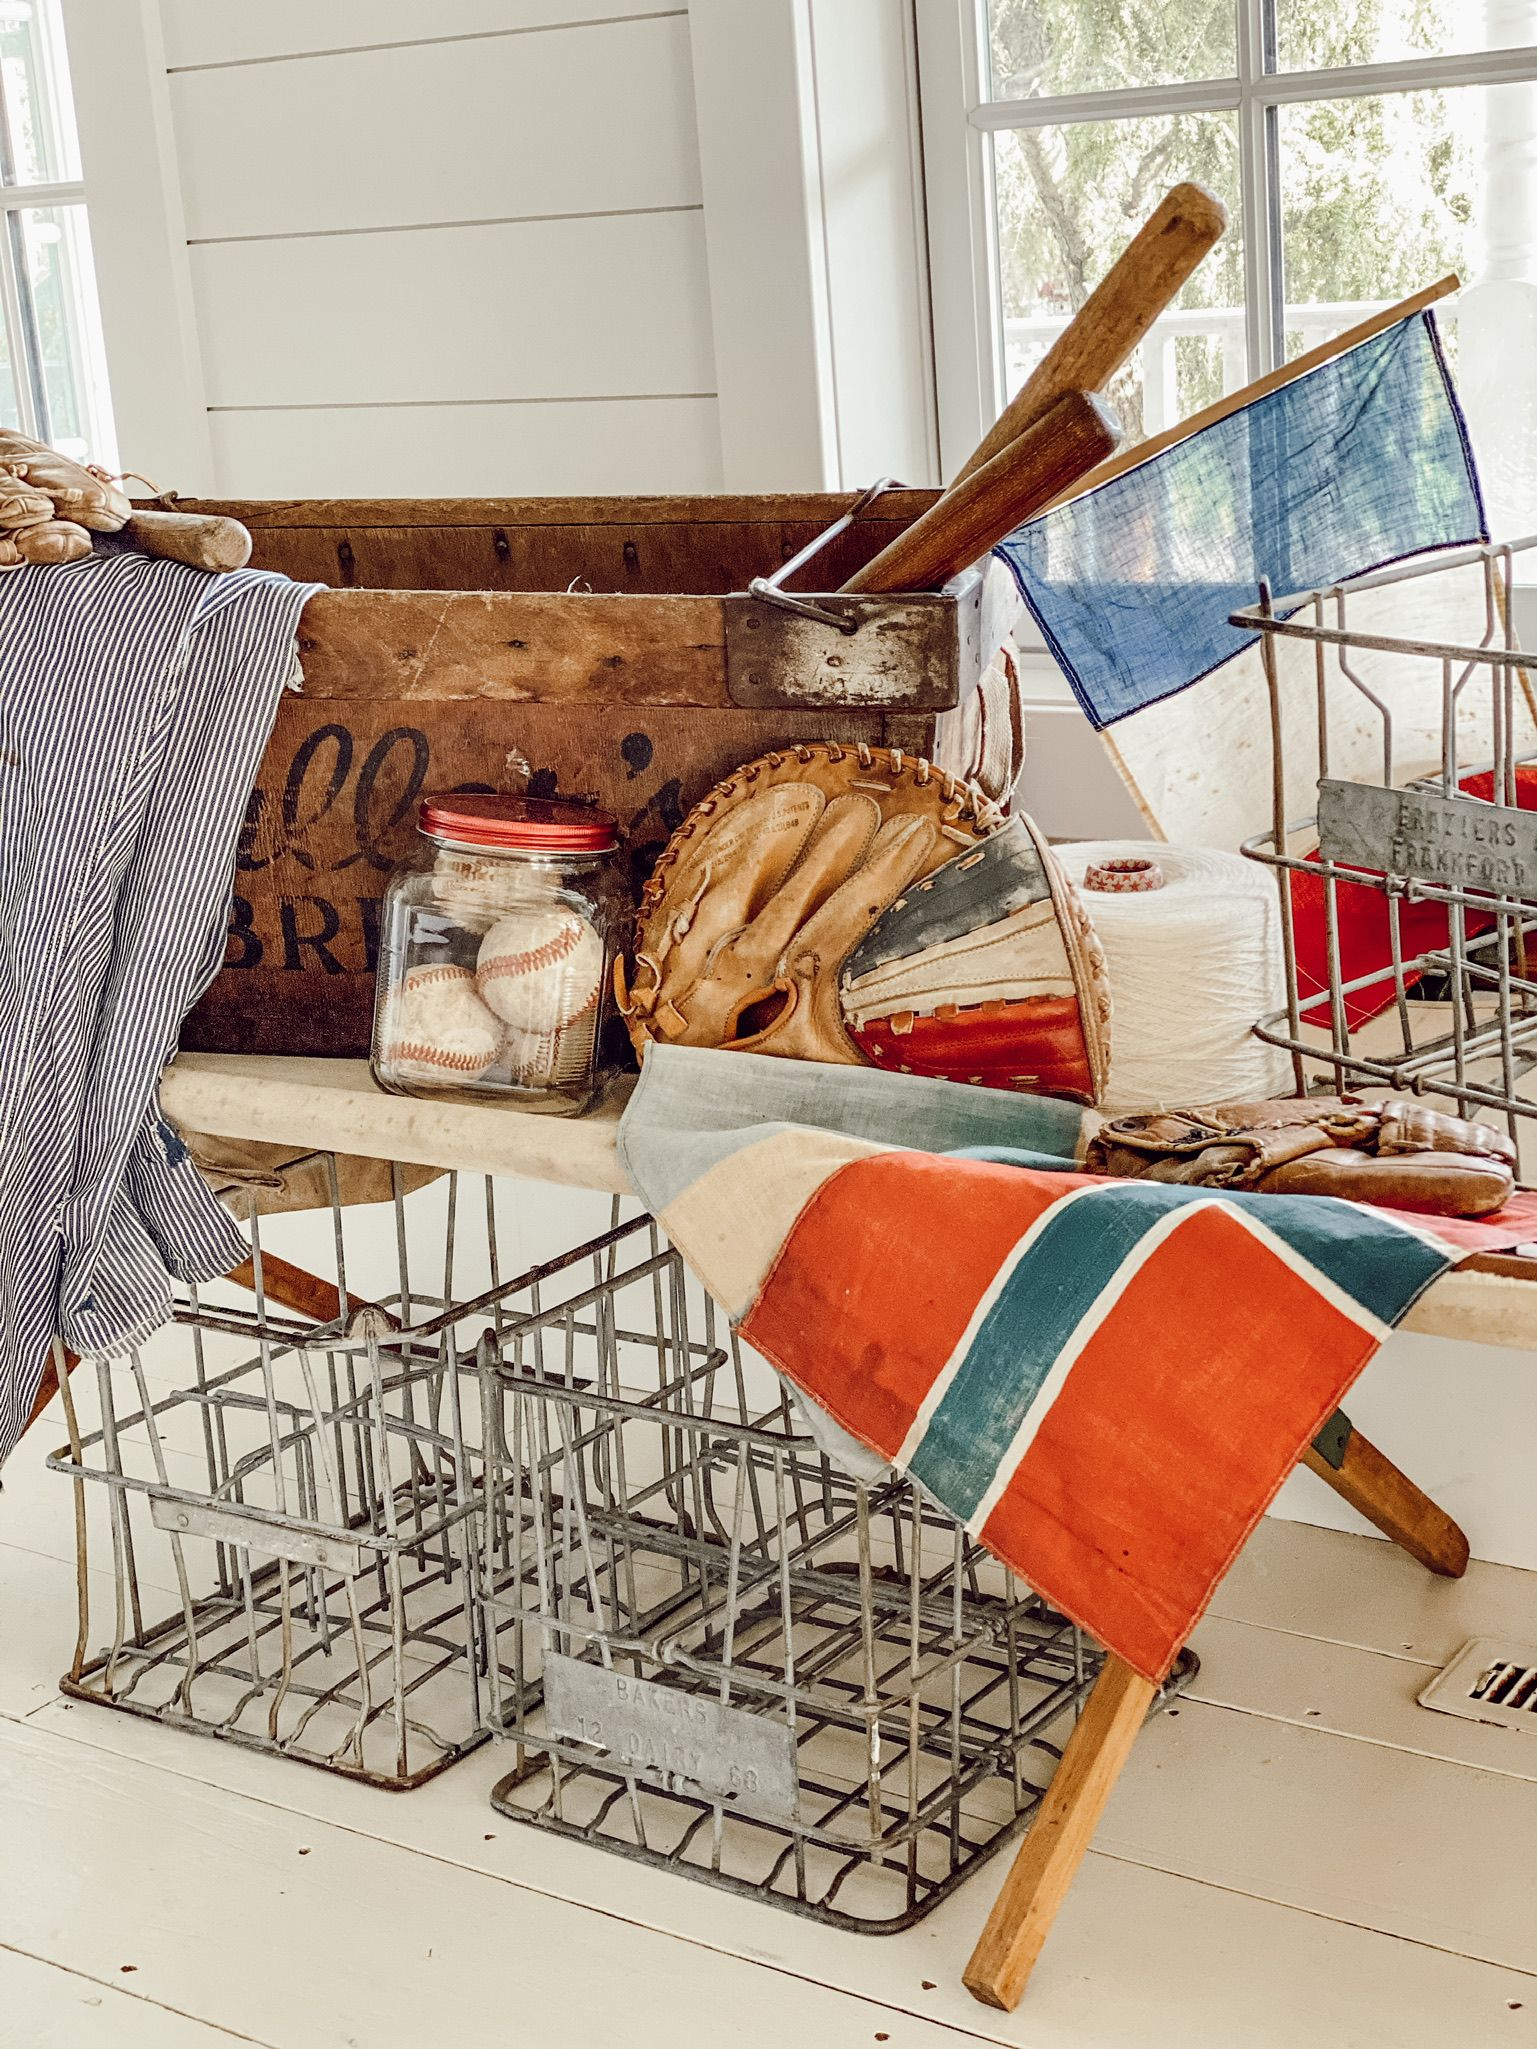 Weekend Antique Finds in 2020 Fresh farmhouse, Antiques